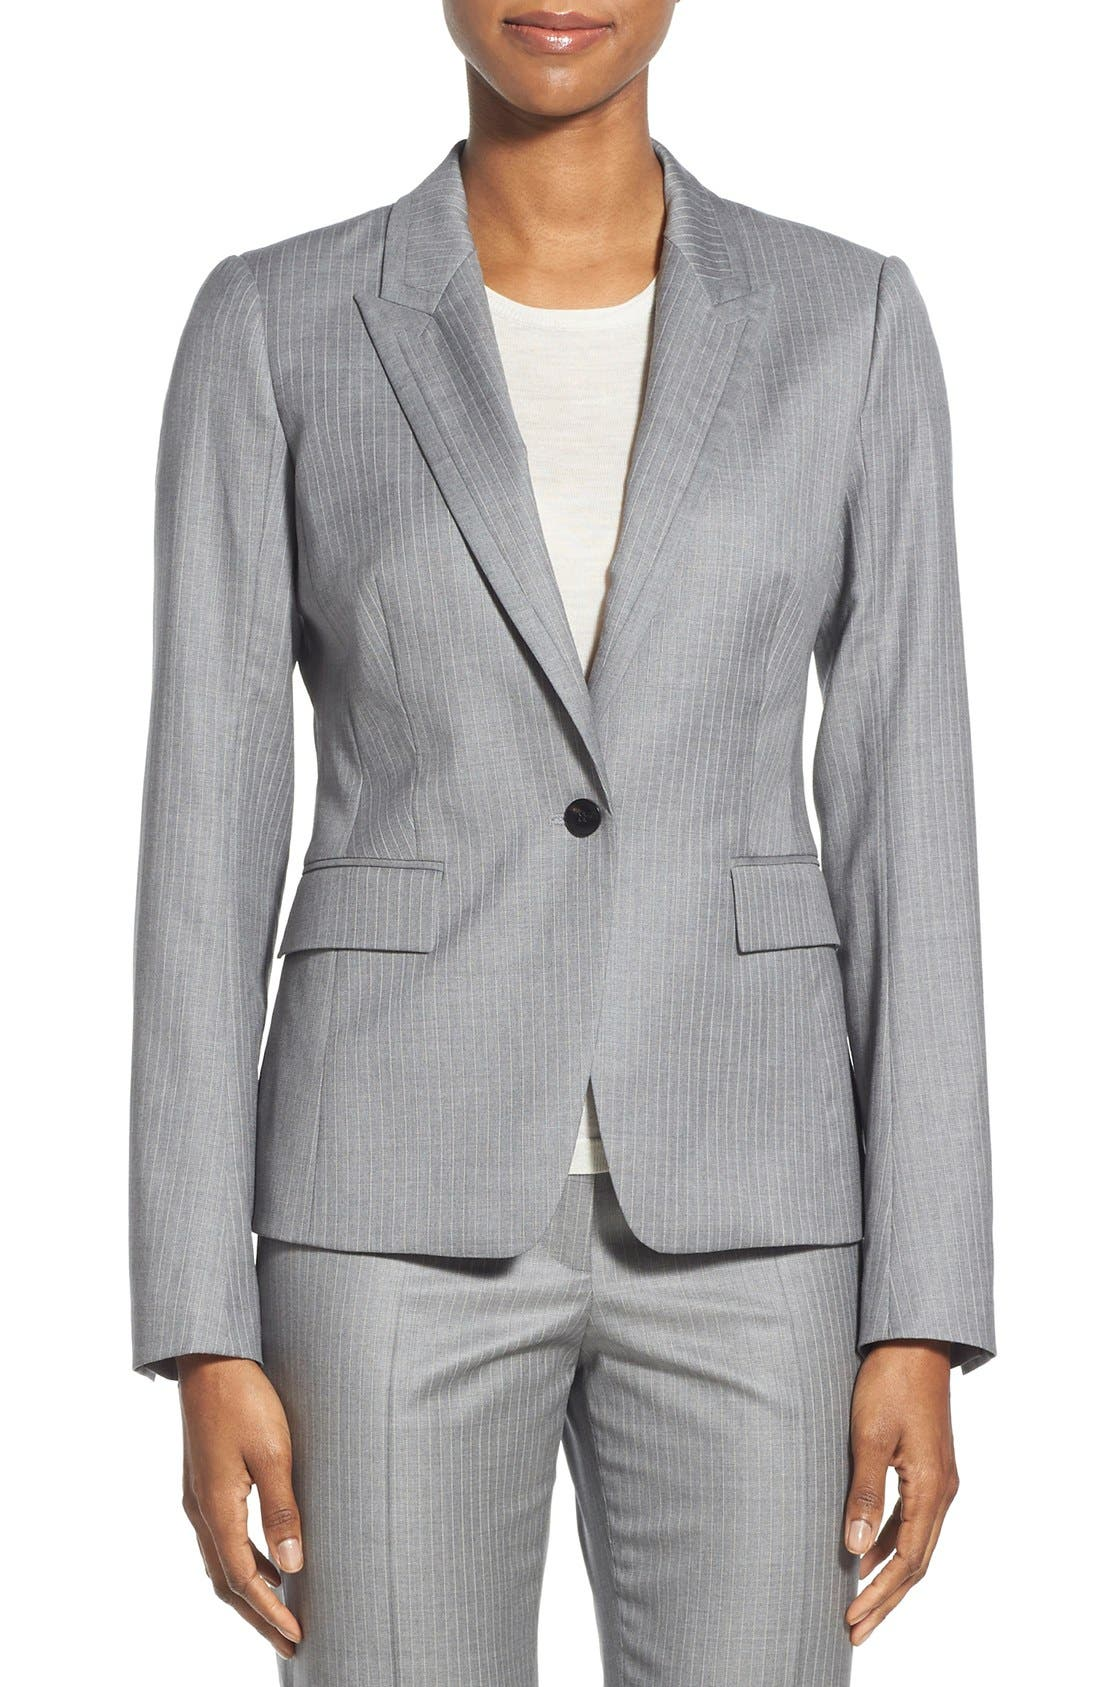 'Jelenna' Pinstripe One-Button Suit Jacket, Main, color, 060